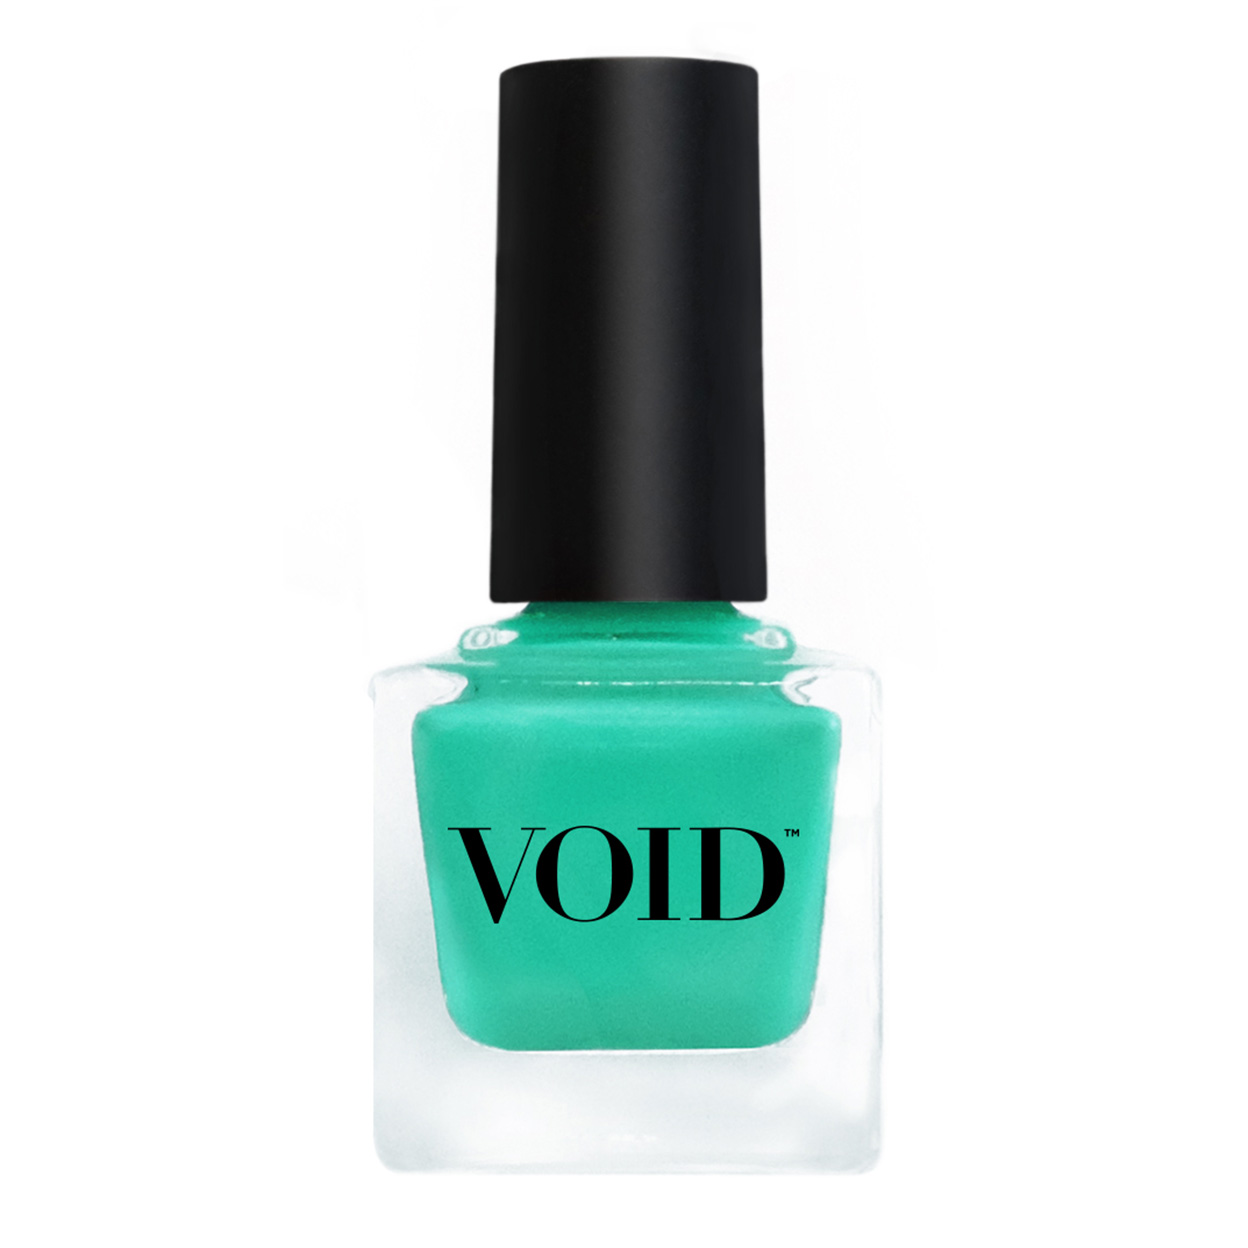 VOID Beauty 5 Free Cruelty Free Nail Polish Lacquer, Just Let Go ...